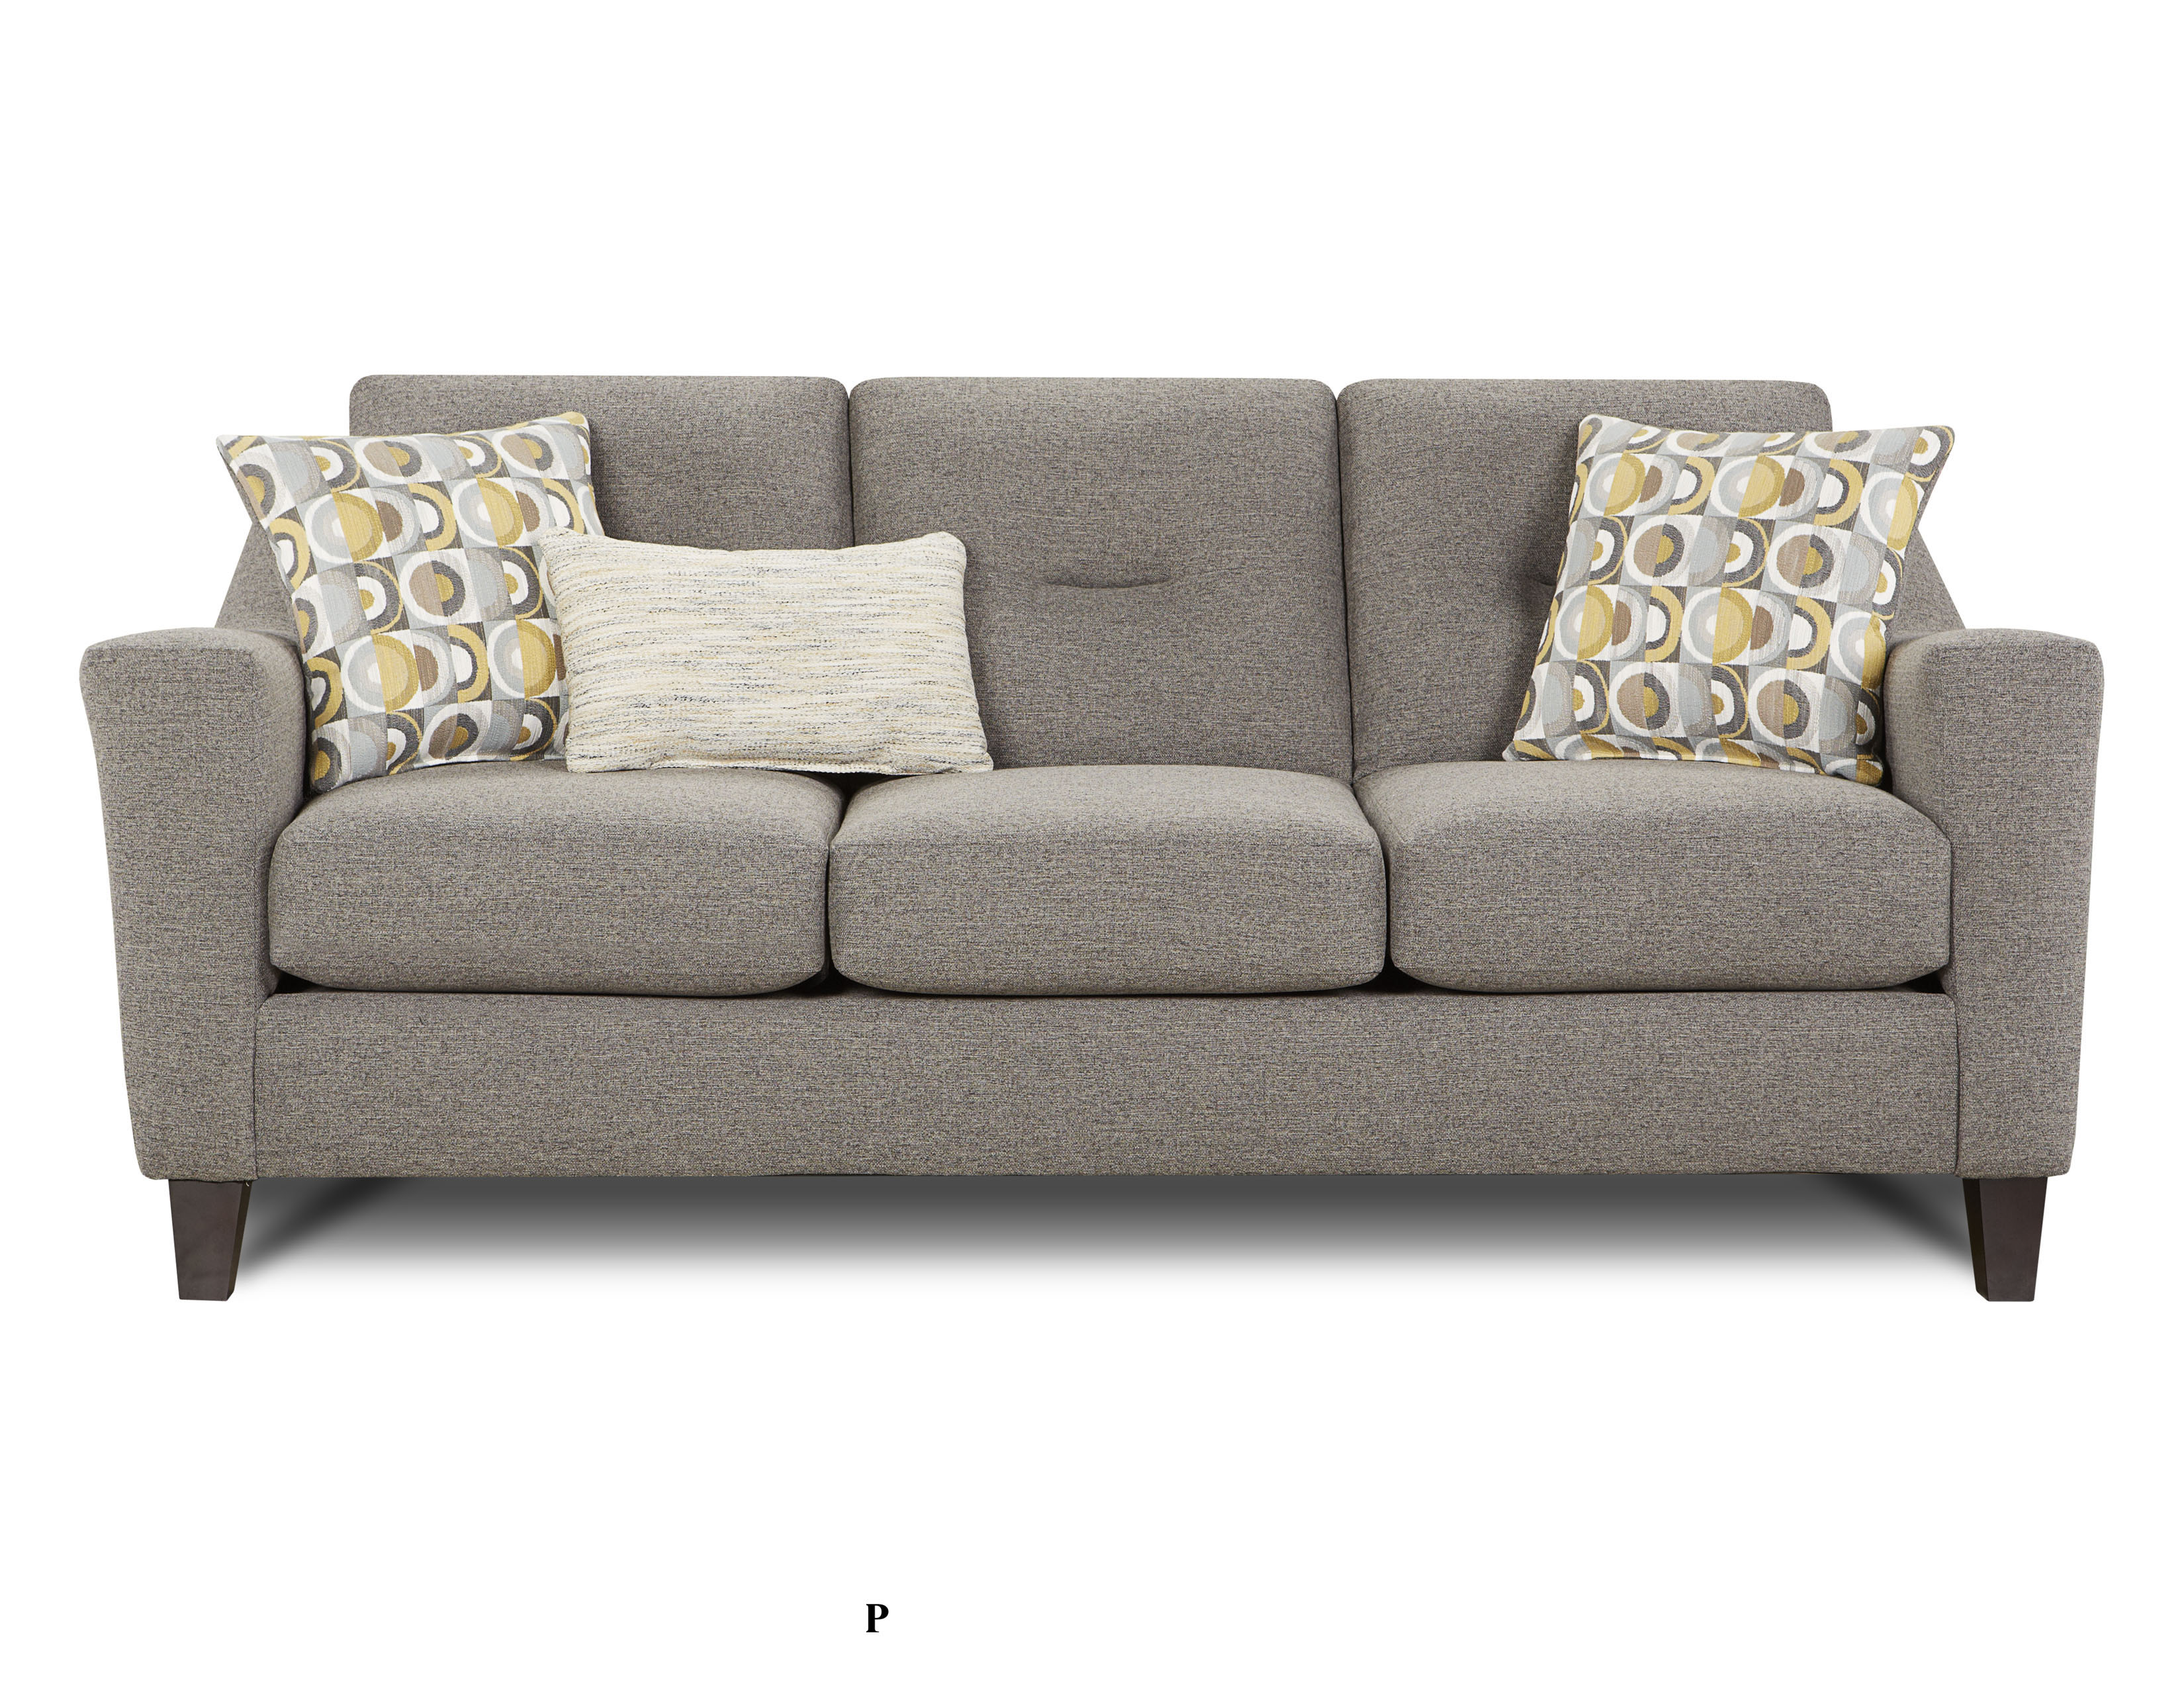 Dillist Mica Fusion Furniture sofa